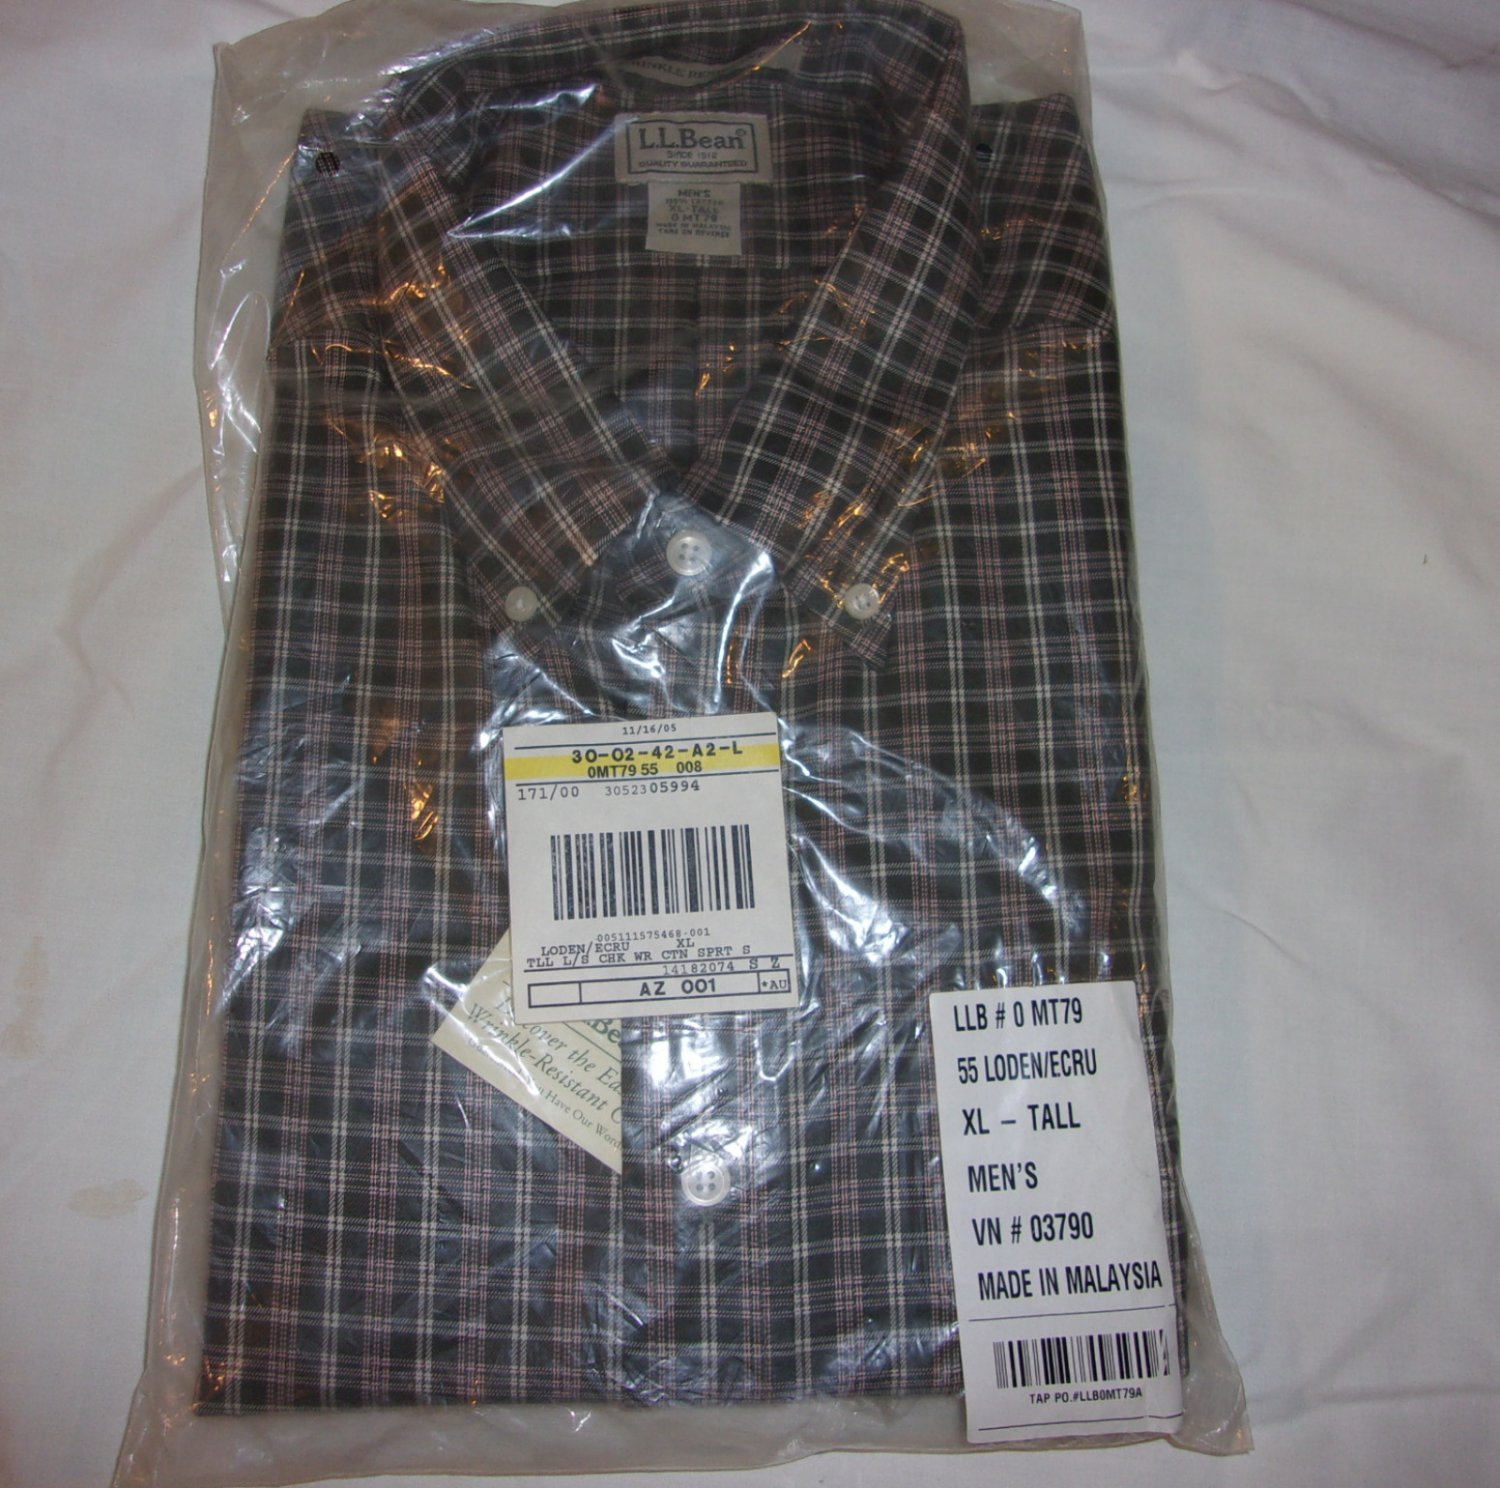 L.L. Bean Shirt- Size XL- Tall